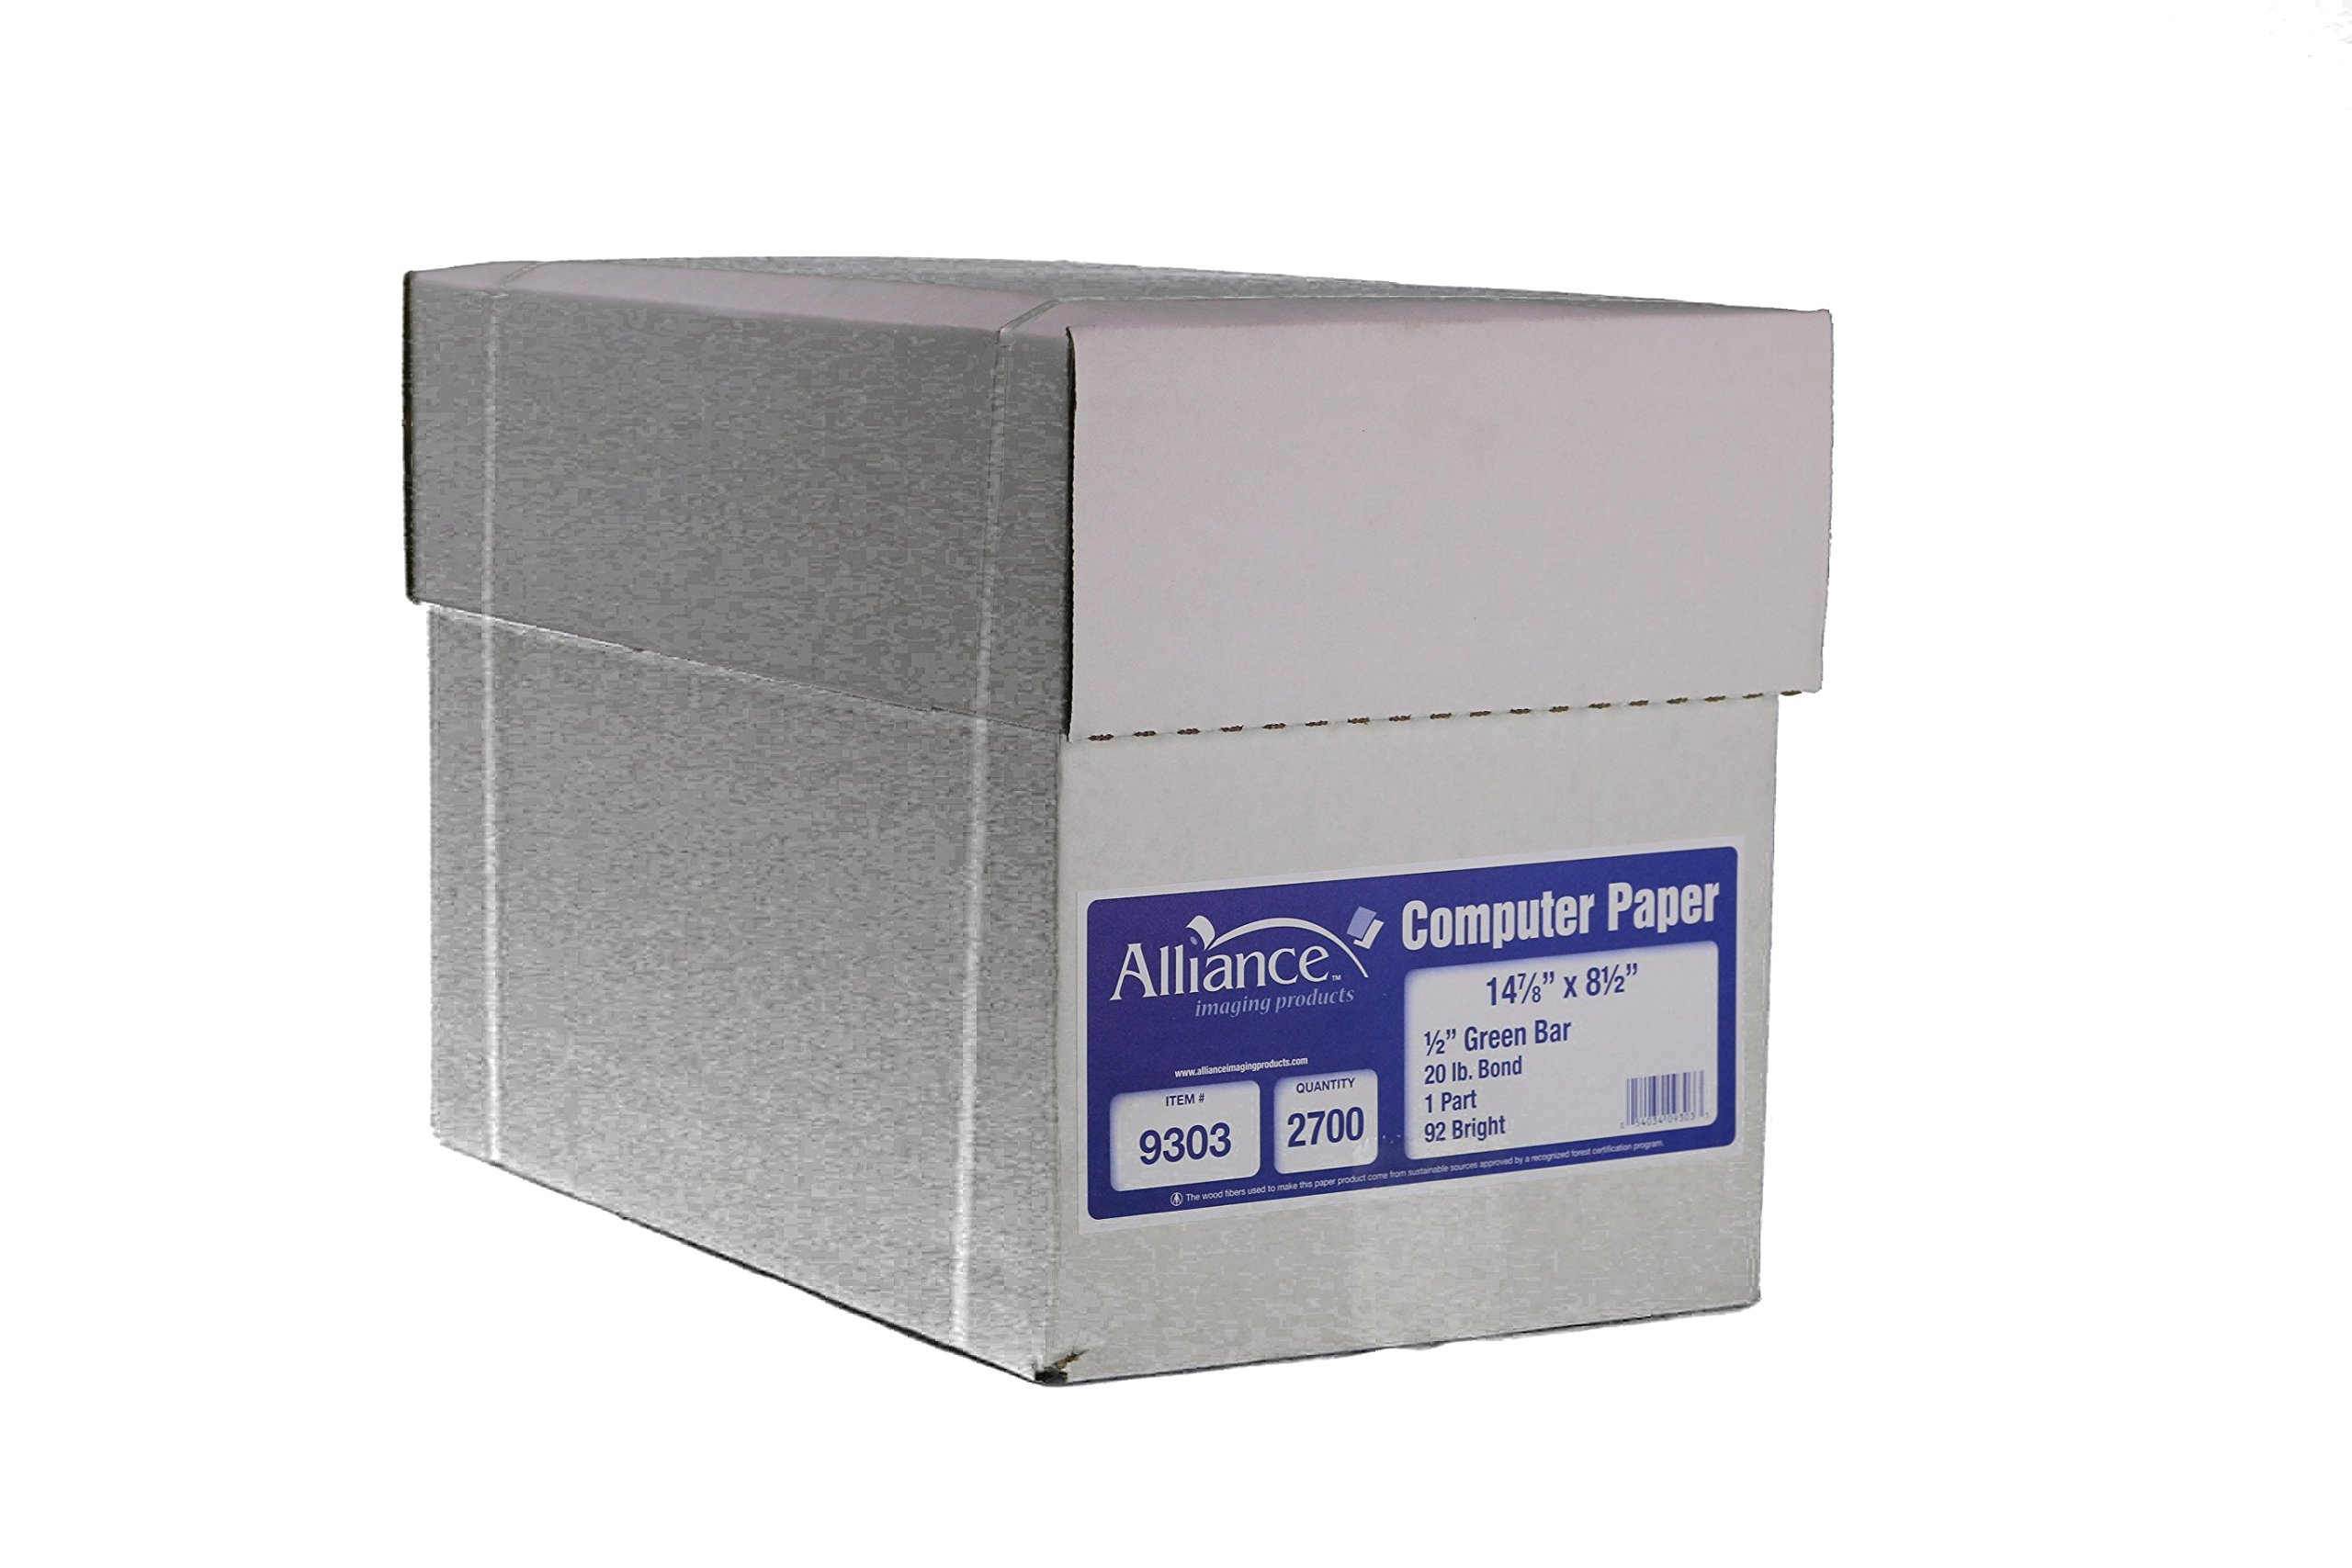 Alliance Continuous Computer Paper 14-7/8'' x 8''-1/2'' with 1/2'' Green Bar 1-Part 92 Bright 20lb 2700 Sheets per Carton (9303)